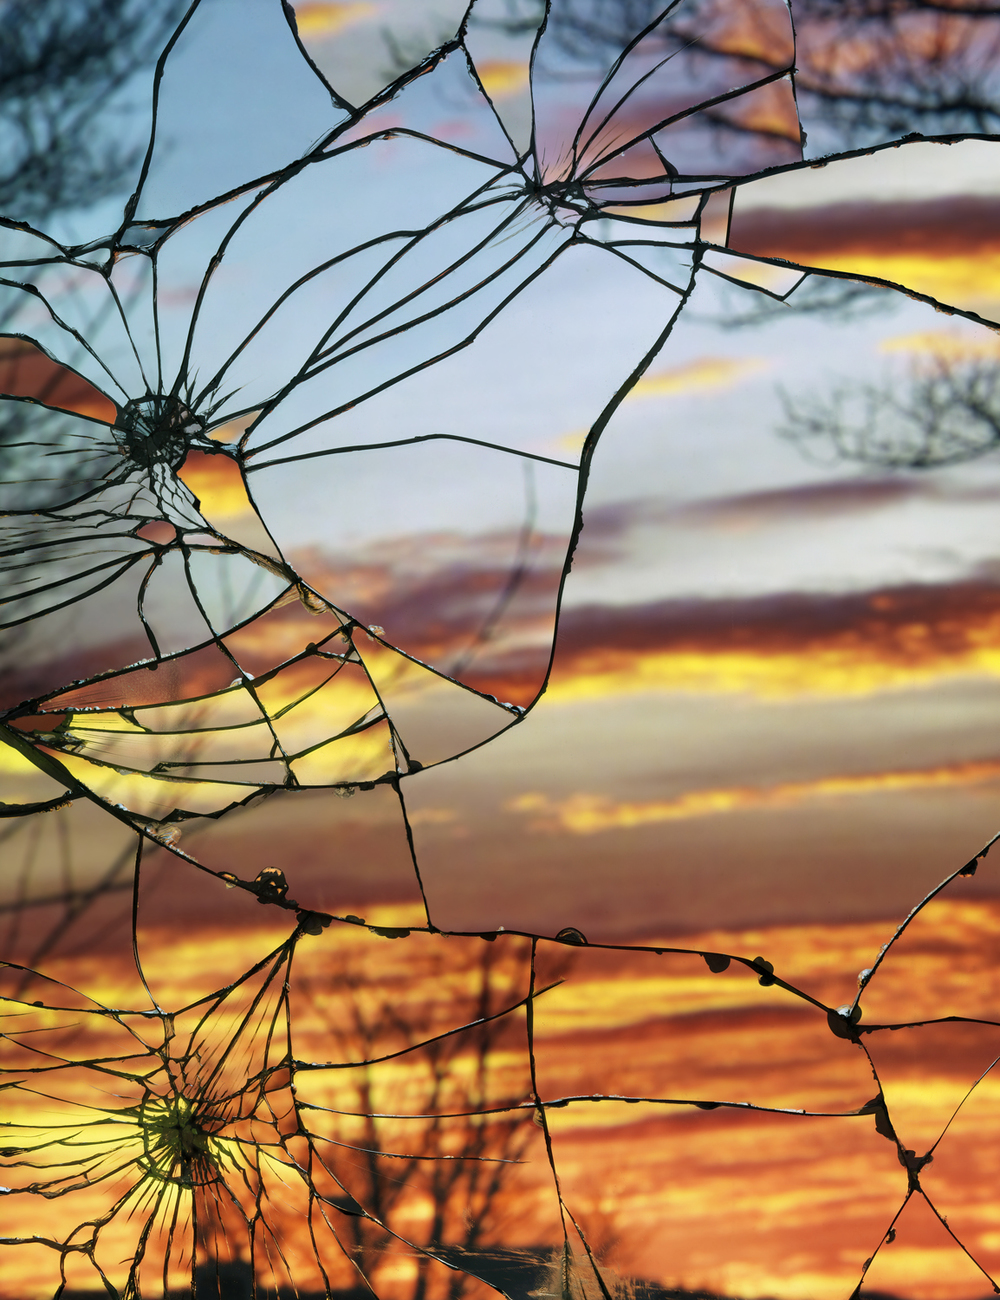 Broken Mirror_Evening Sky (Anscochrome)2